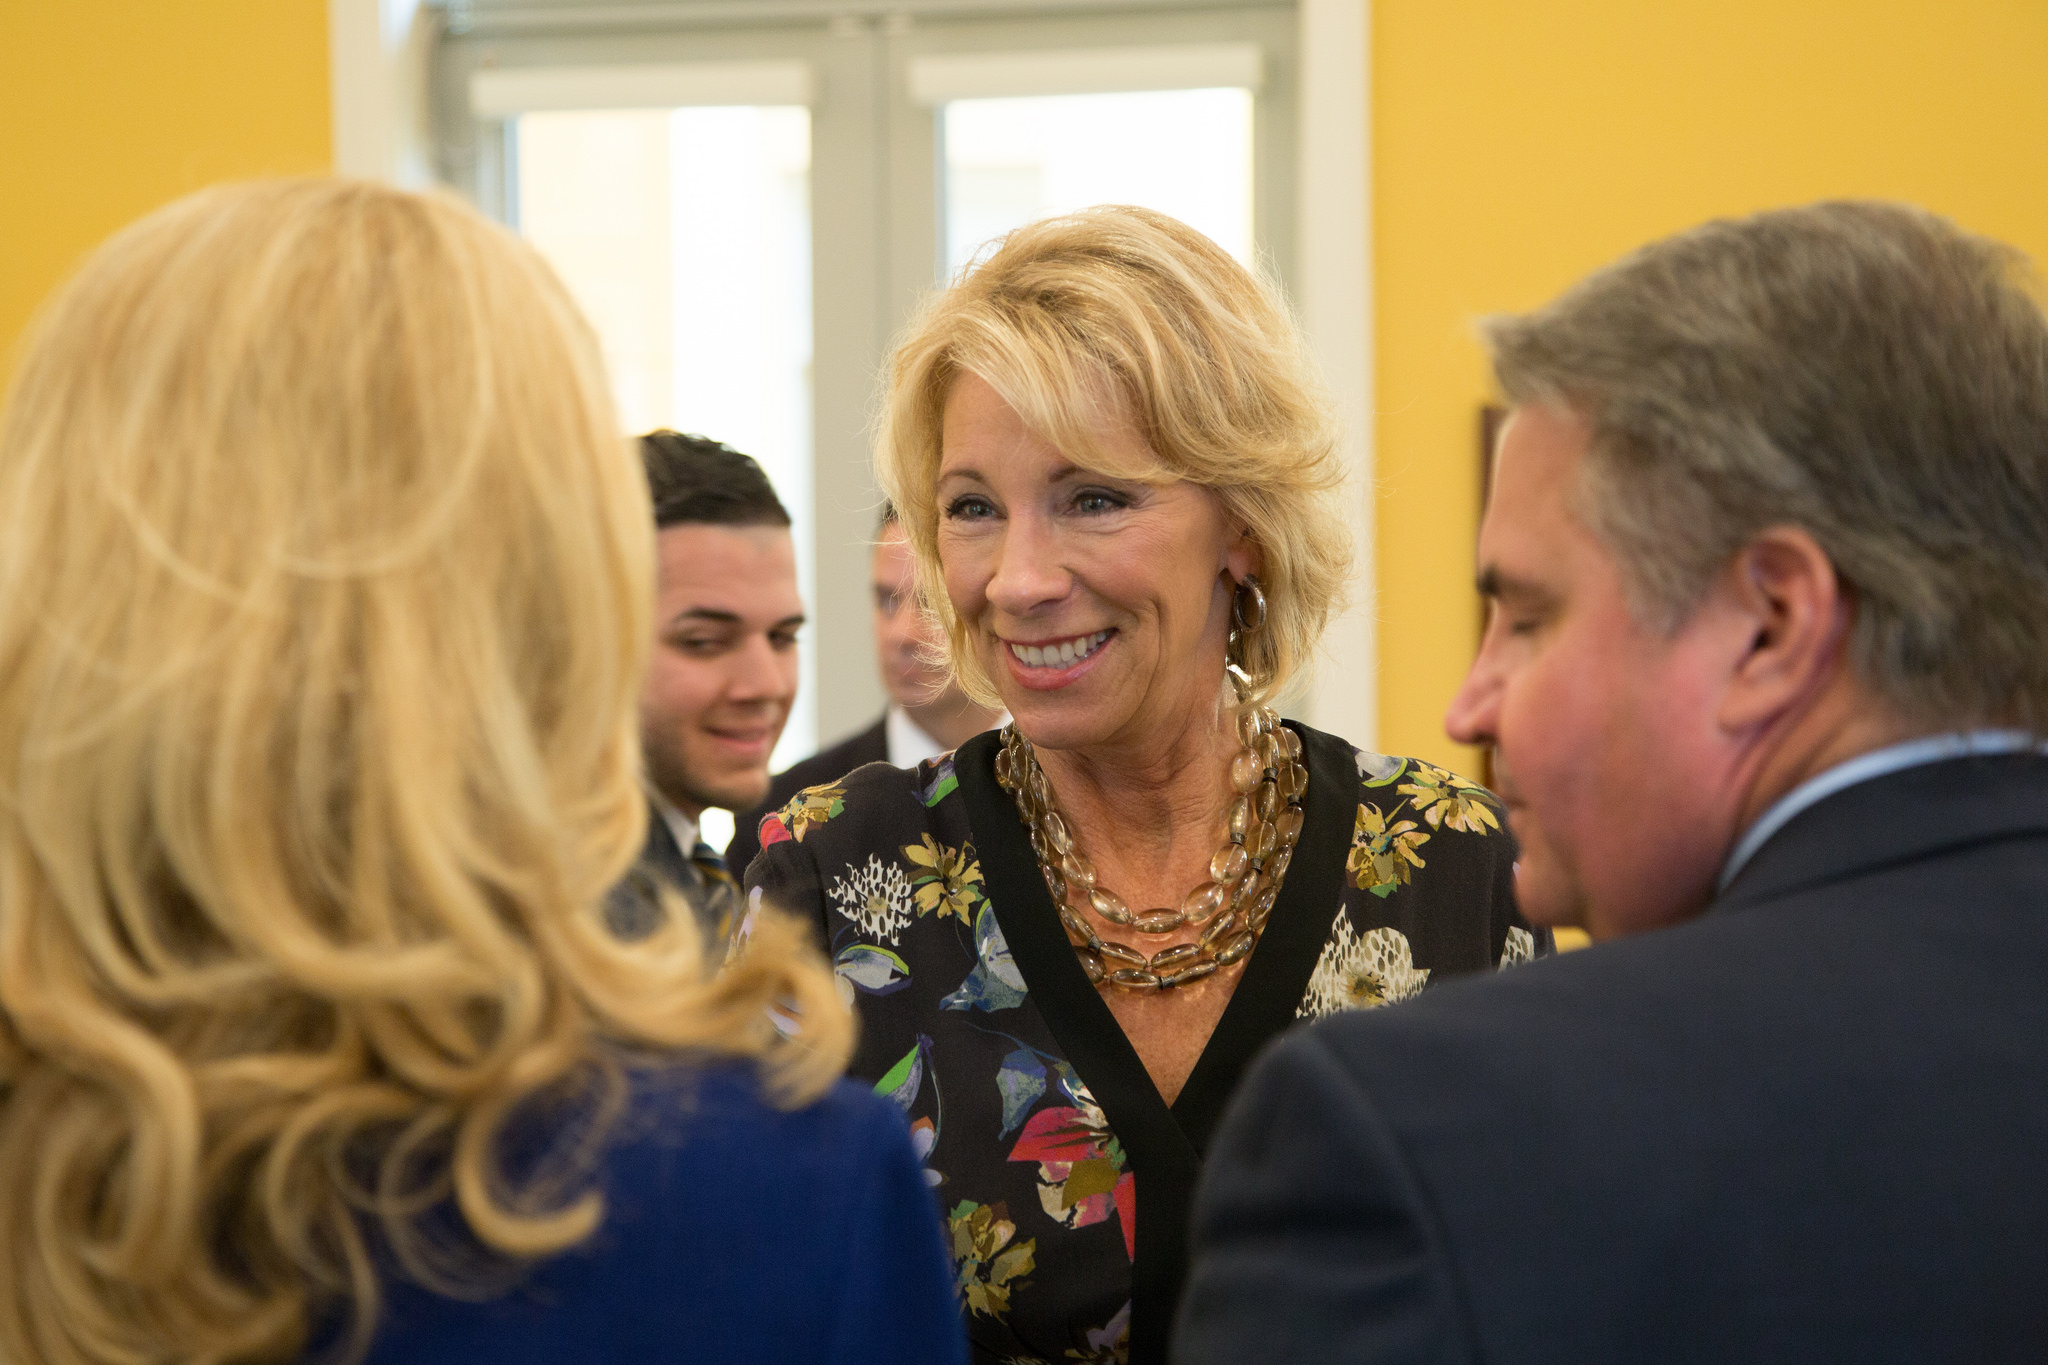 U.S. Secretary of Education Betsy DeVos met with university leaders during her visit to FIU on April 6.